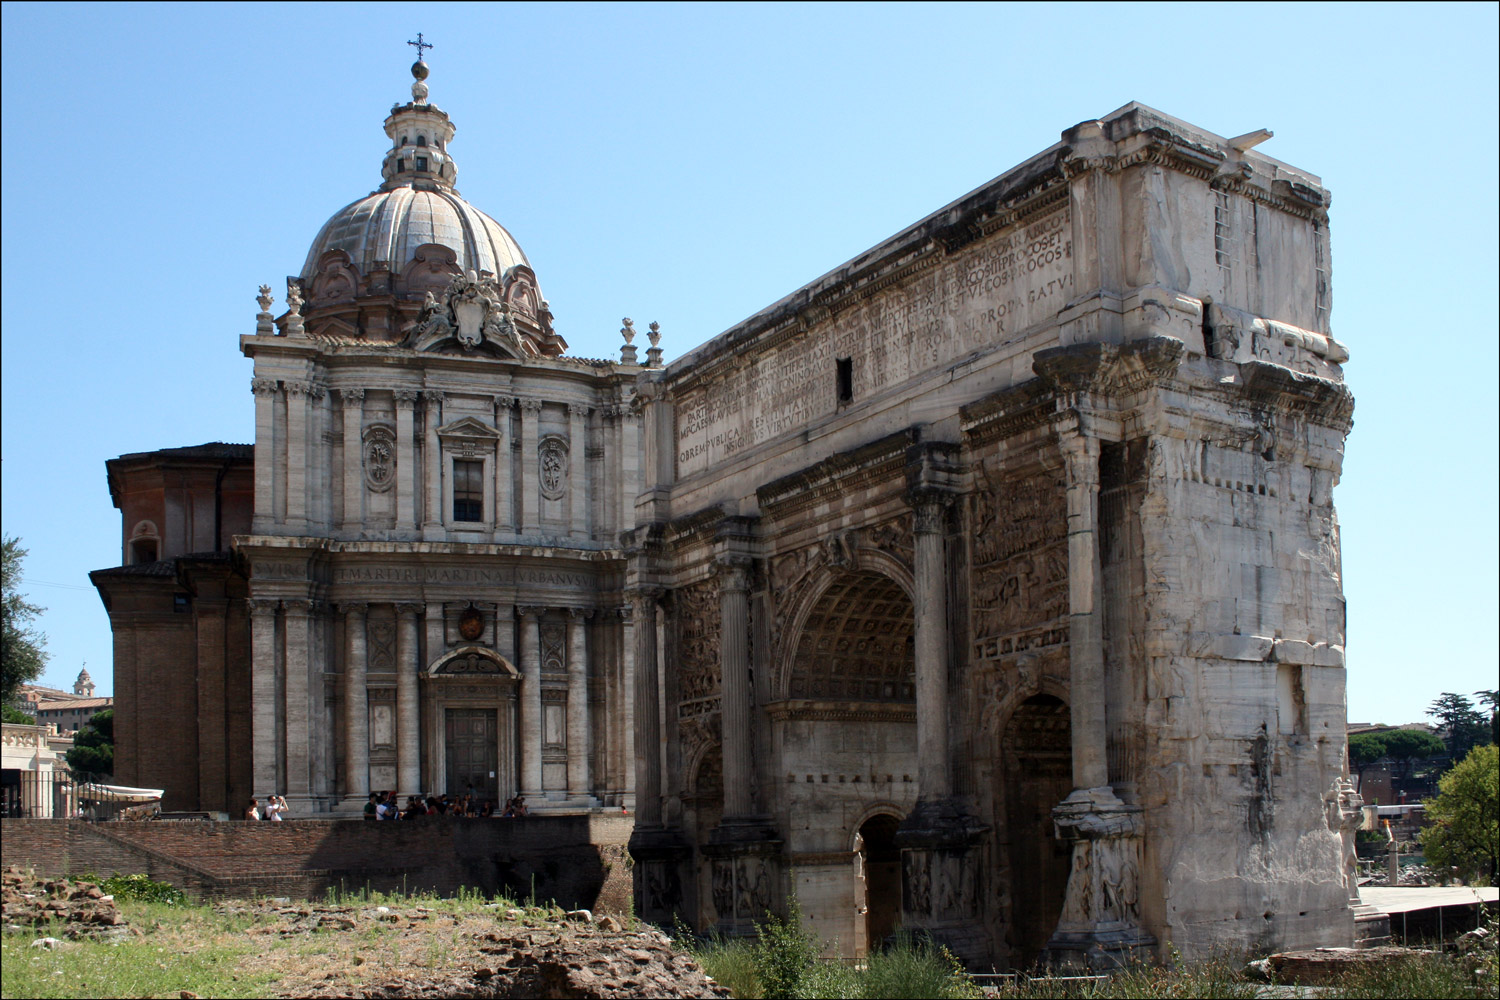 Church of Santi Luca e Martina / Arch of Septimius Severus